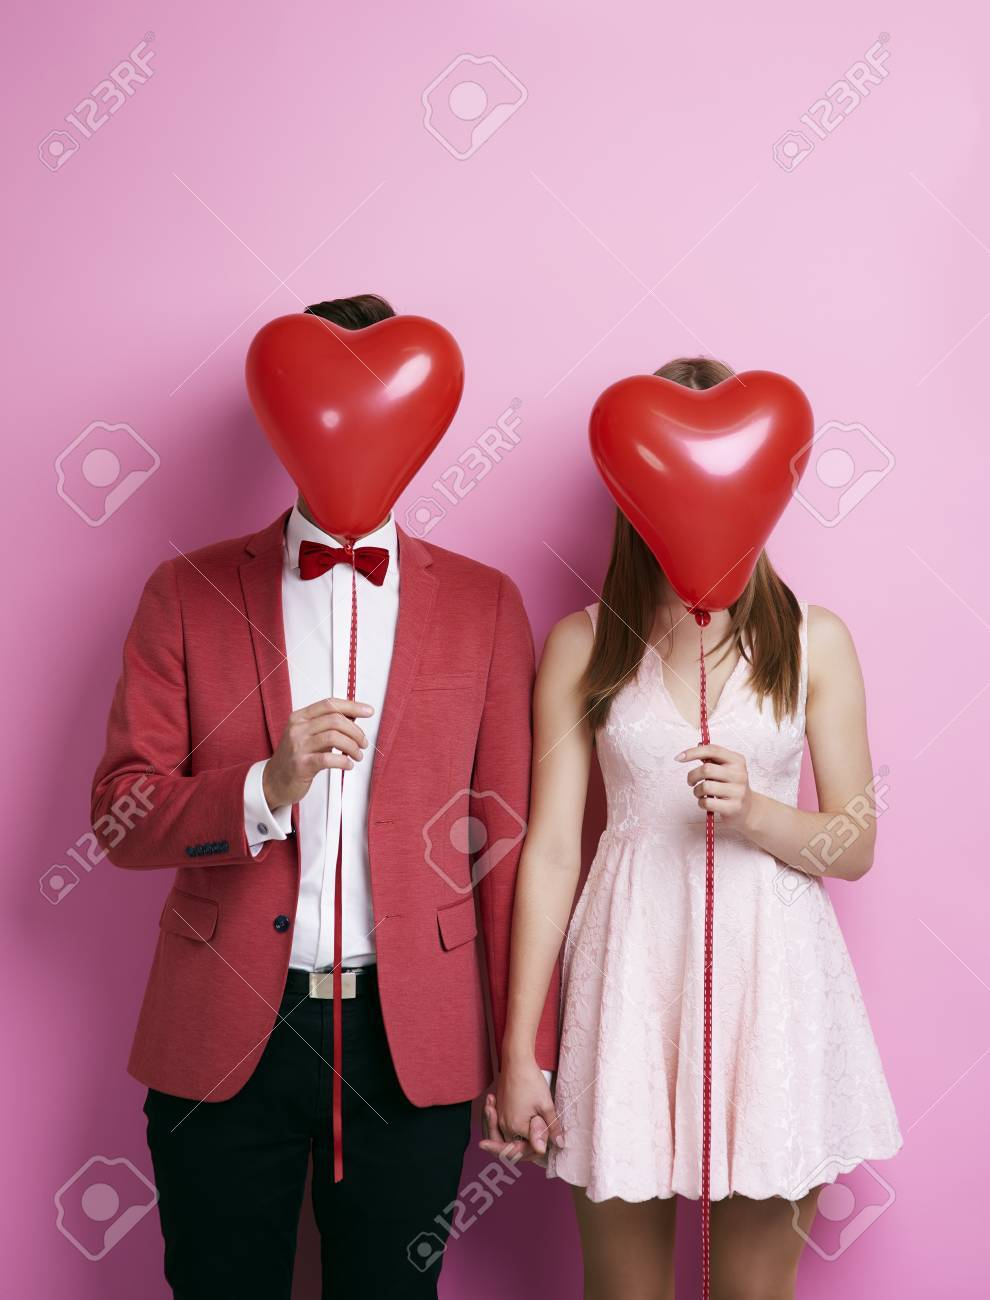 Unrecognizable couple with balloon holding hands - 89280177